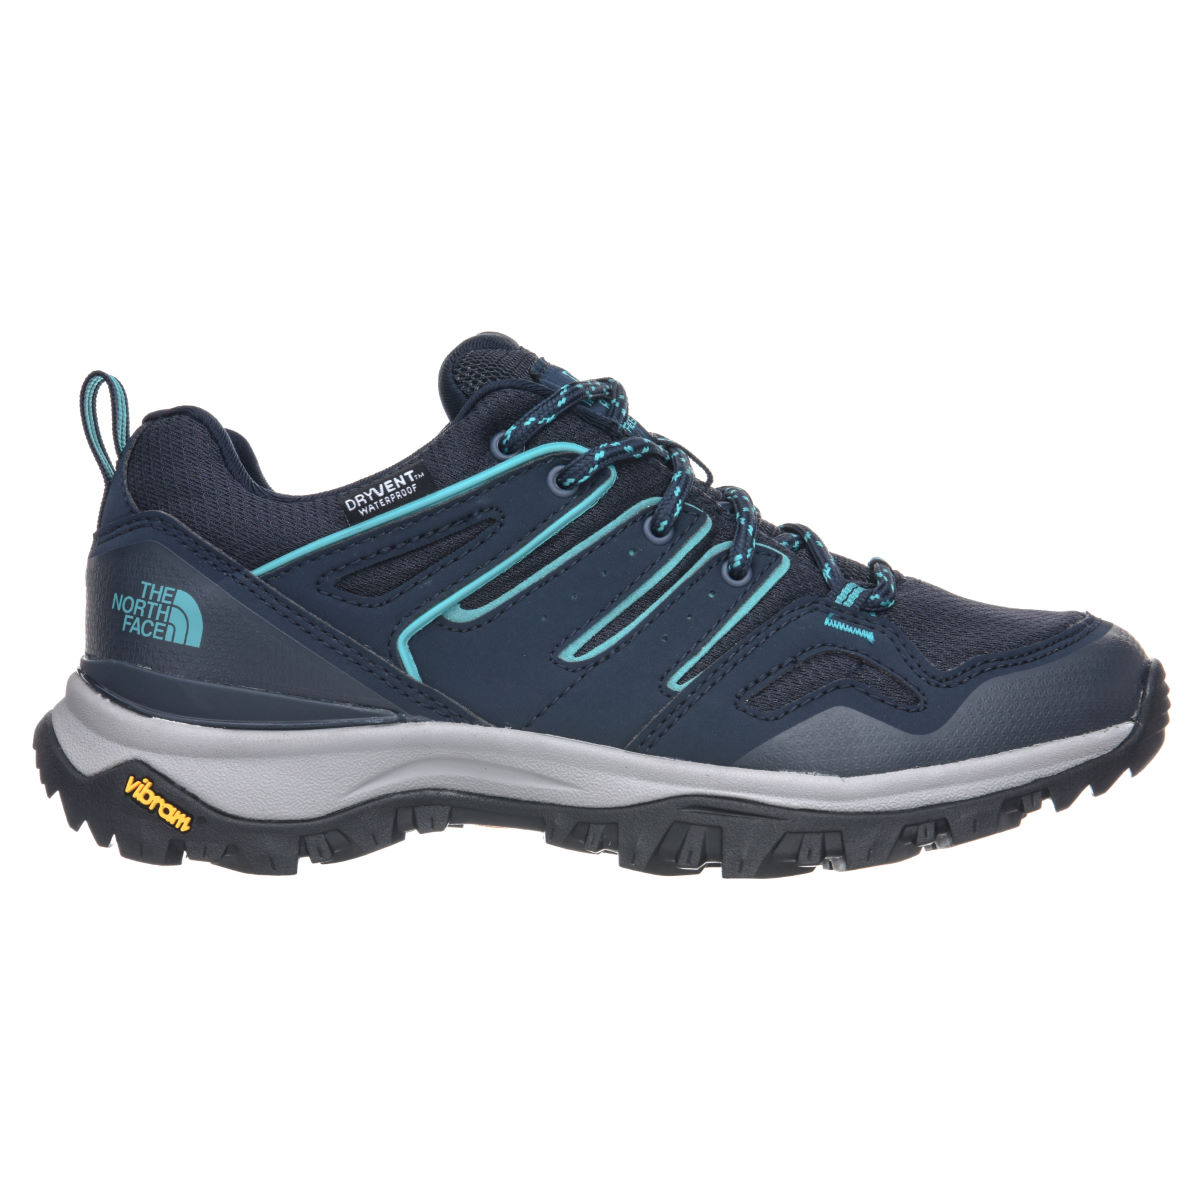 The North Face The North Face Womens Hedgehog Fastpack II Waterproof Shoes   Shoes